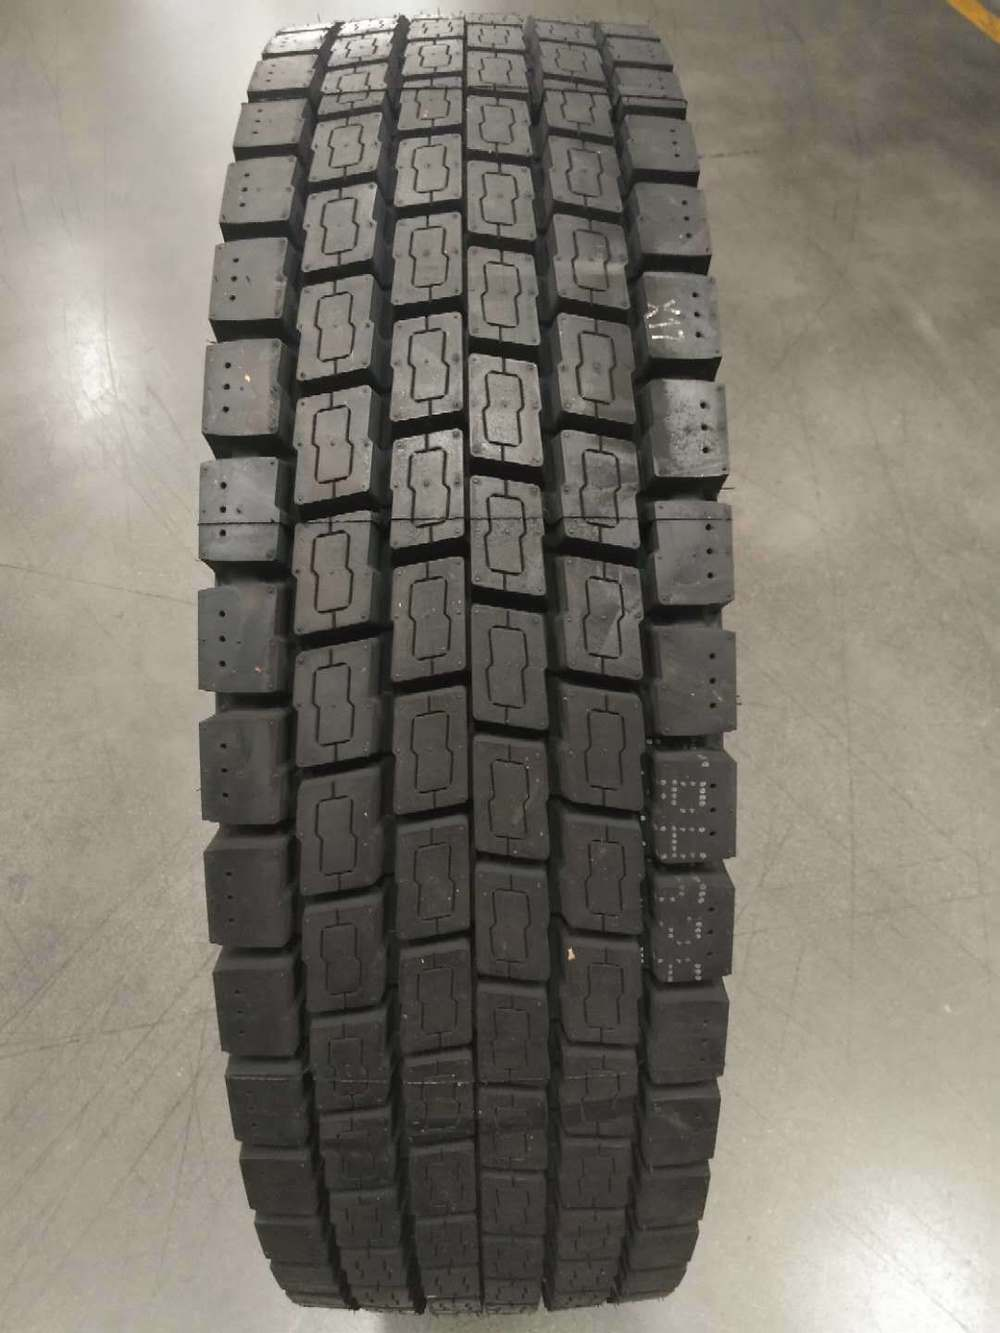 Cheap Price High Quality Truck Tire TBR Size 11r22.5 12r22.5 Truck Tires 315/80r22.5 9.00r20 10.00r20 12.00r20 12.00r24 385/65r22.5 Qingdao Tire